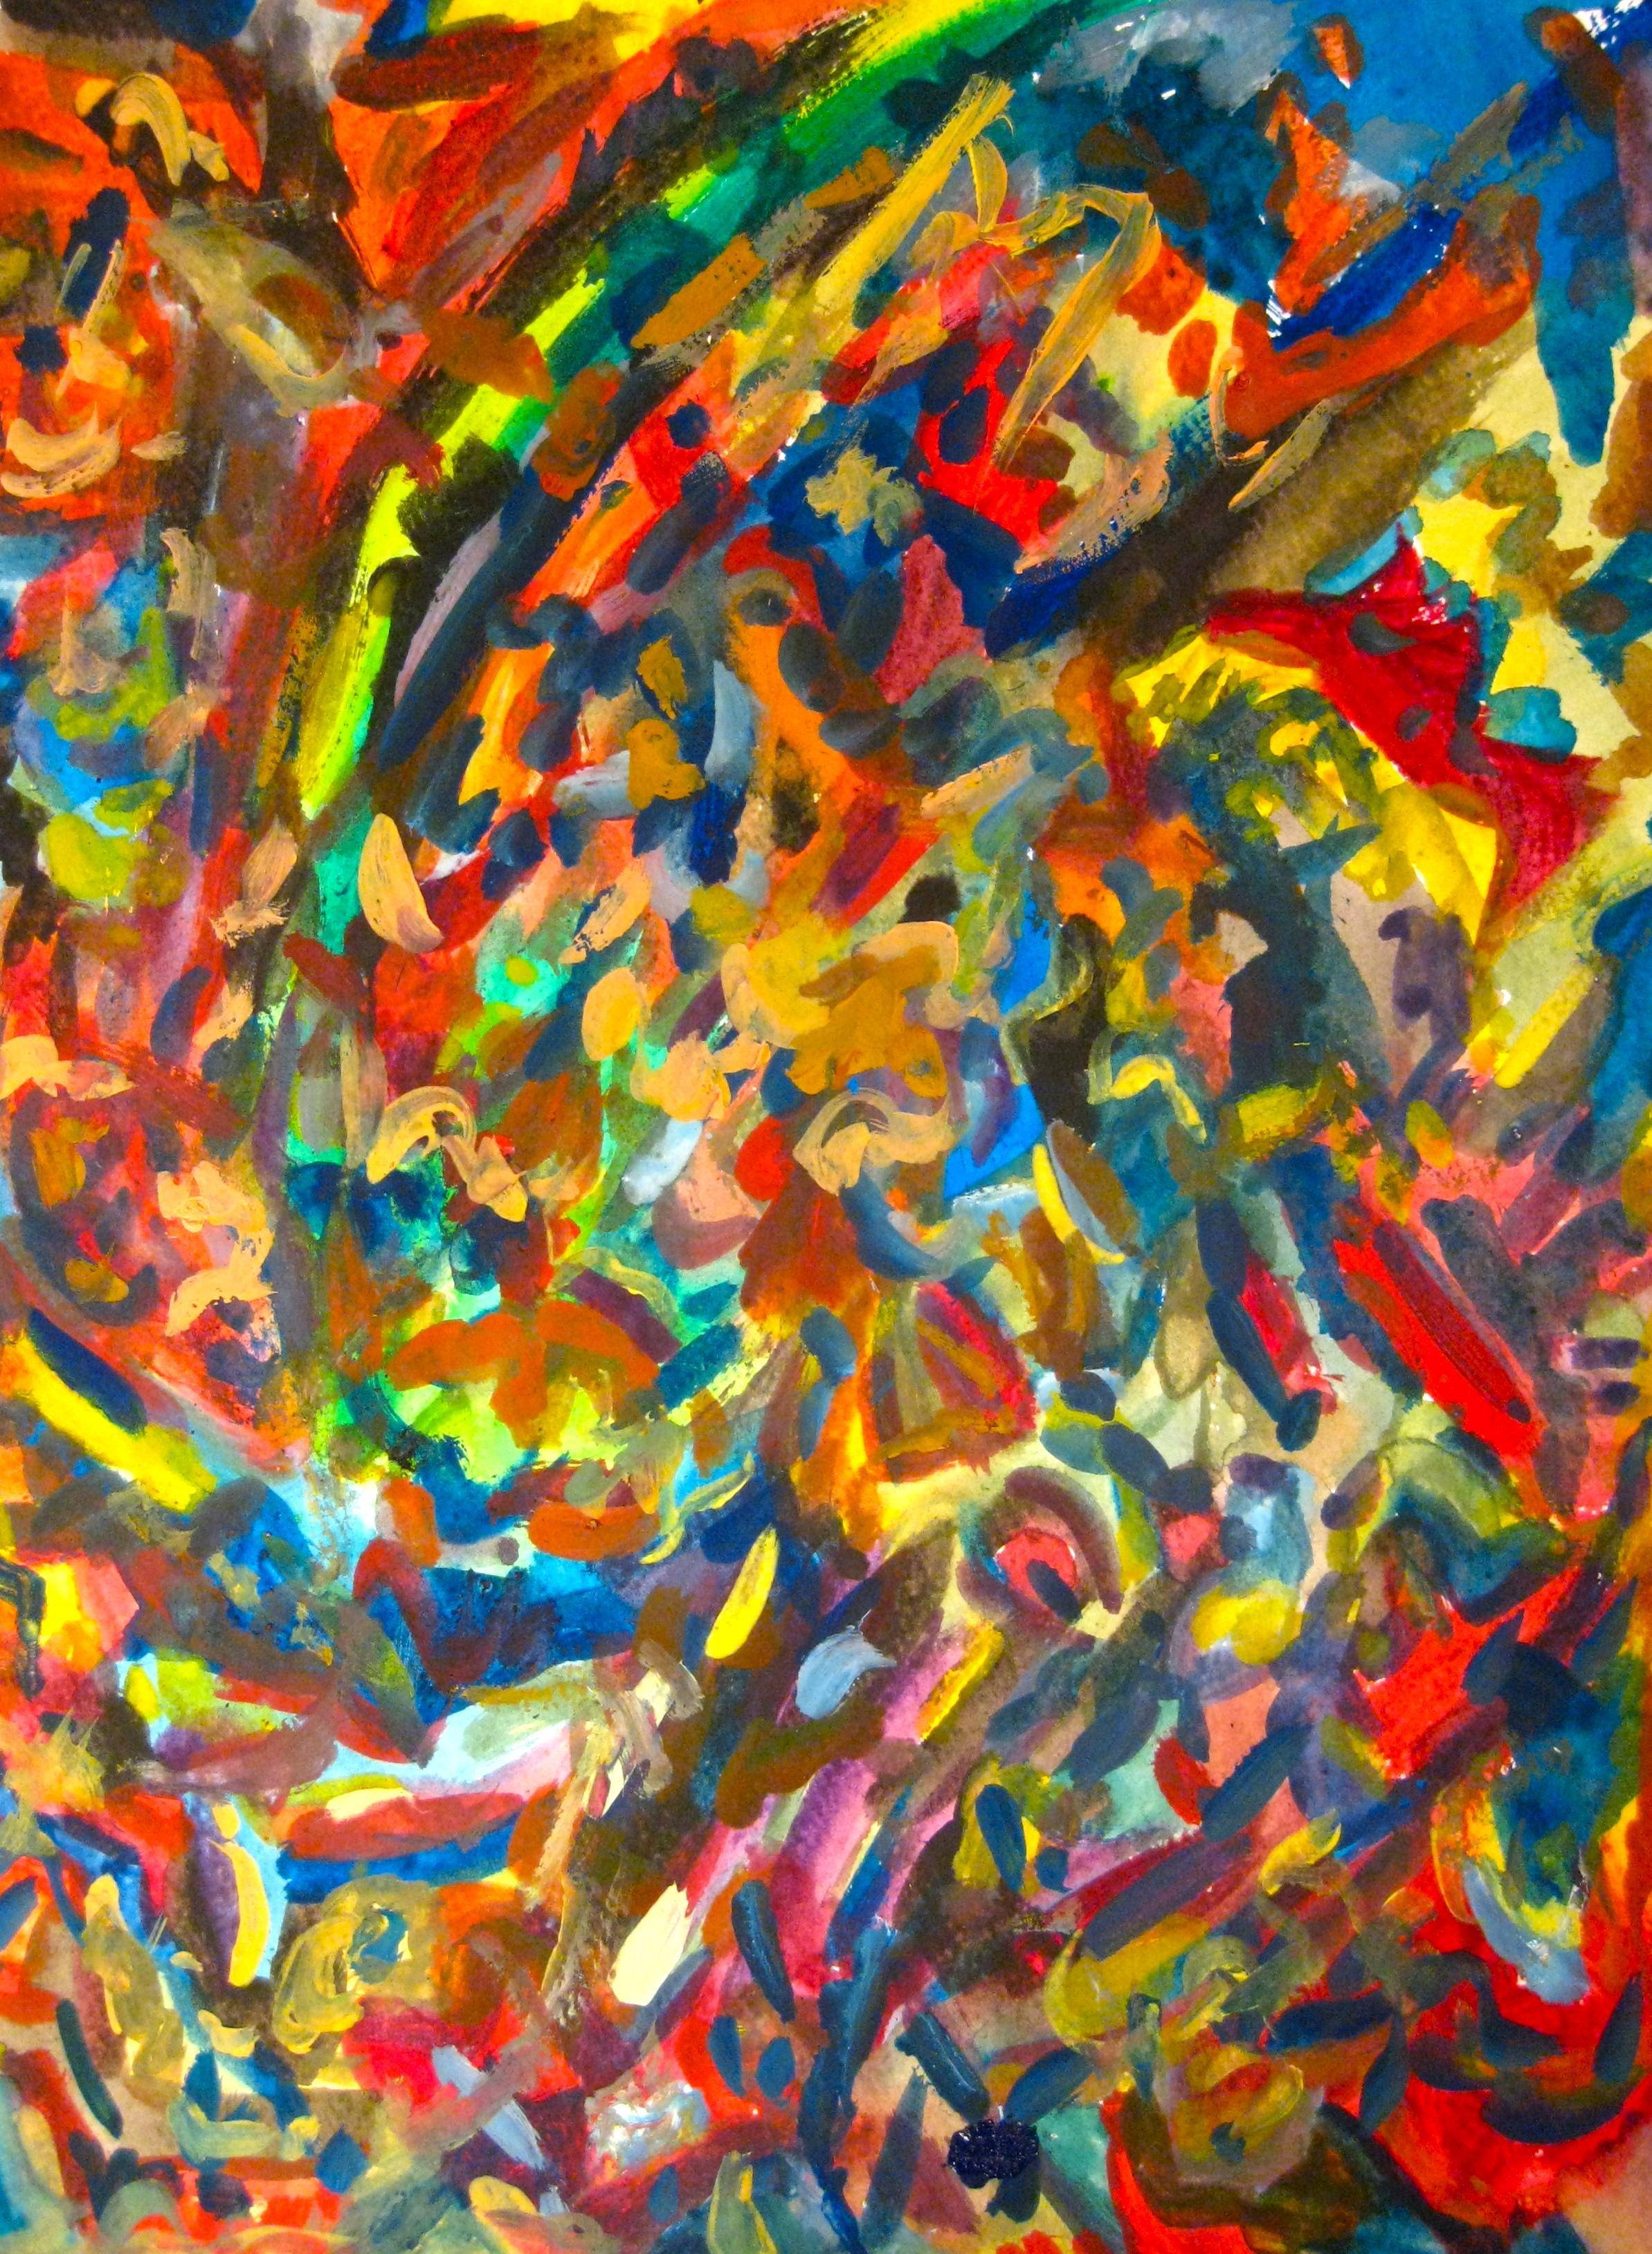 Abstract example 2